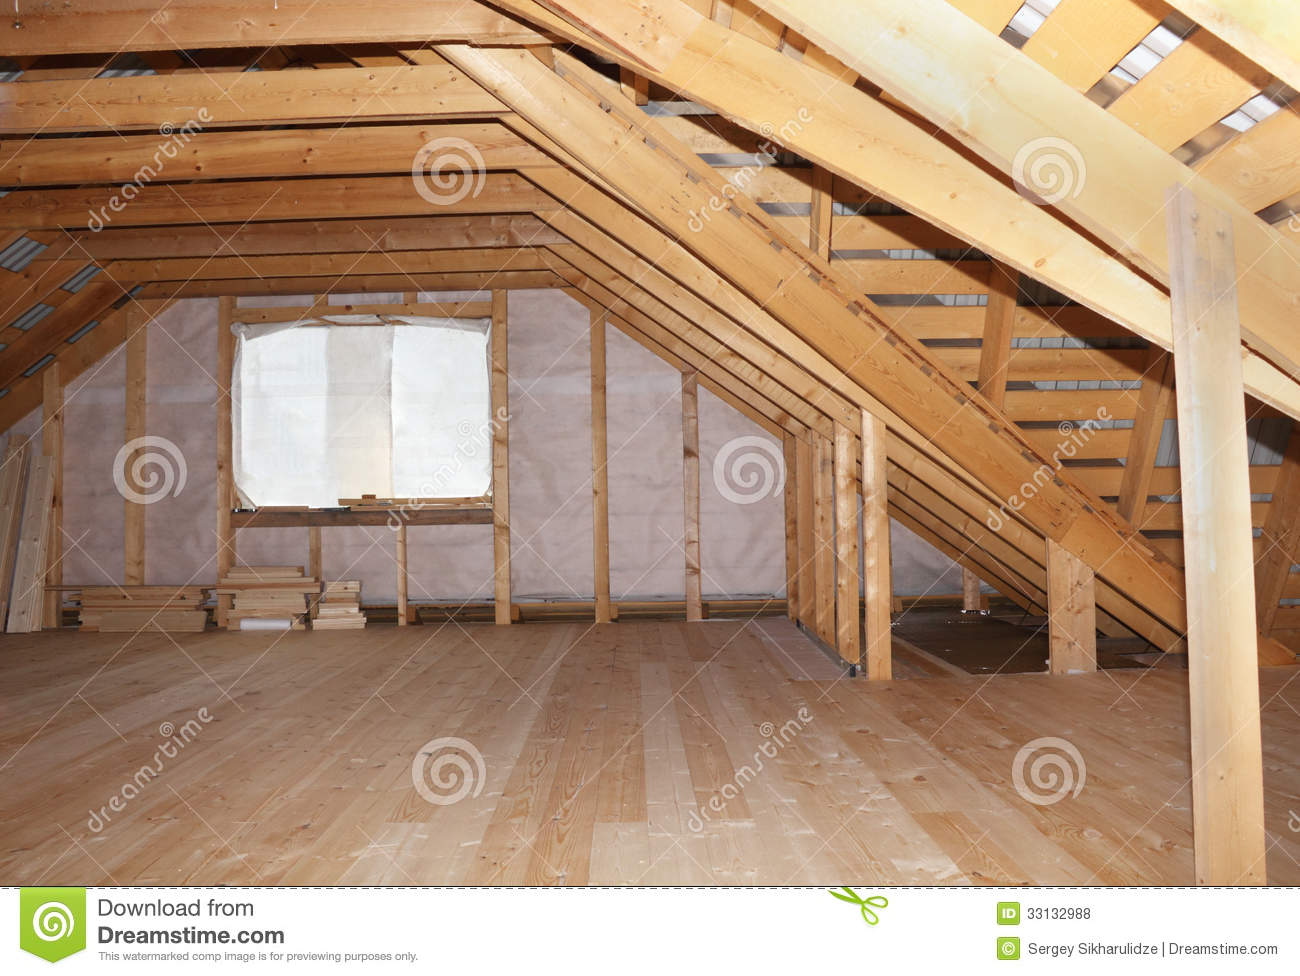 a frame attic ideas - Attic In Wooden House Under Construction Overall View